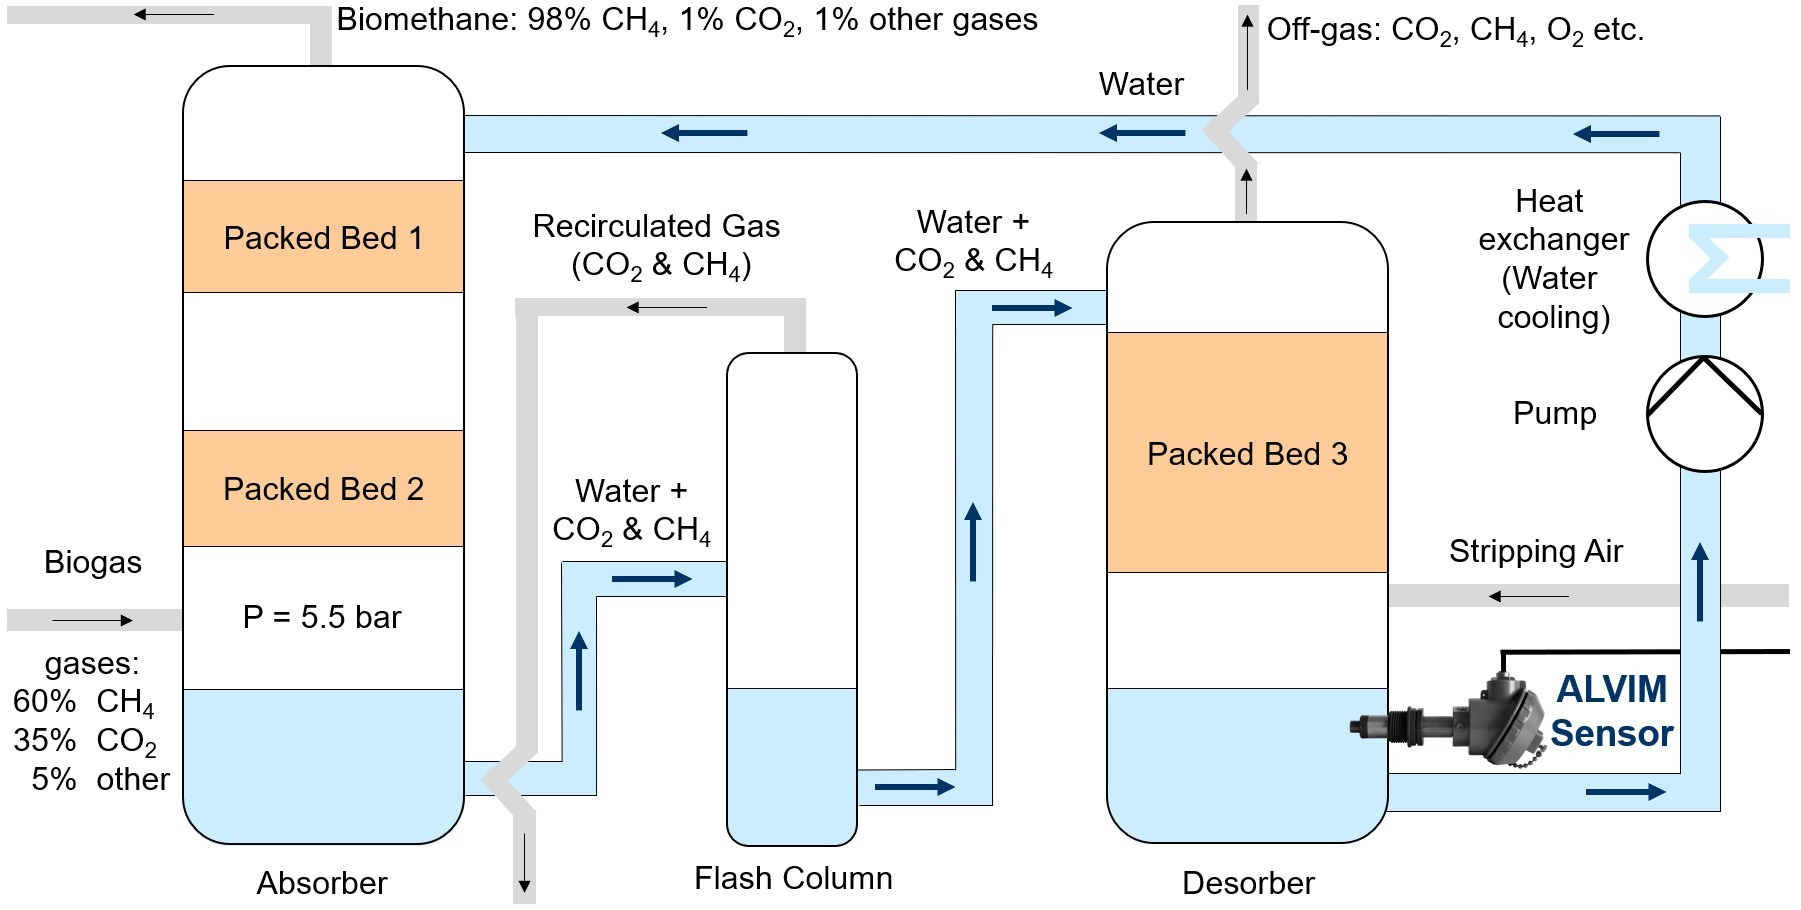 Scheme of absorber / desorber water loop of the biogas upgrading plant